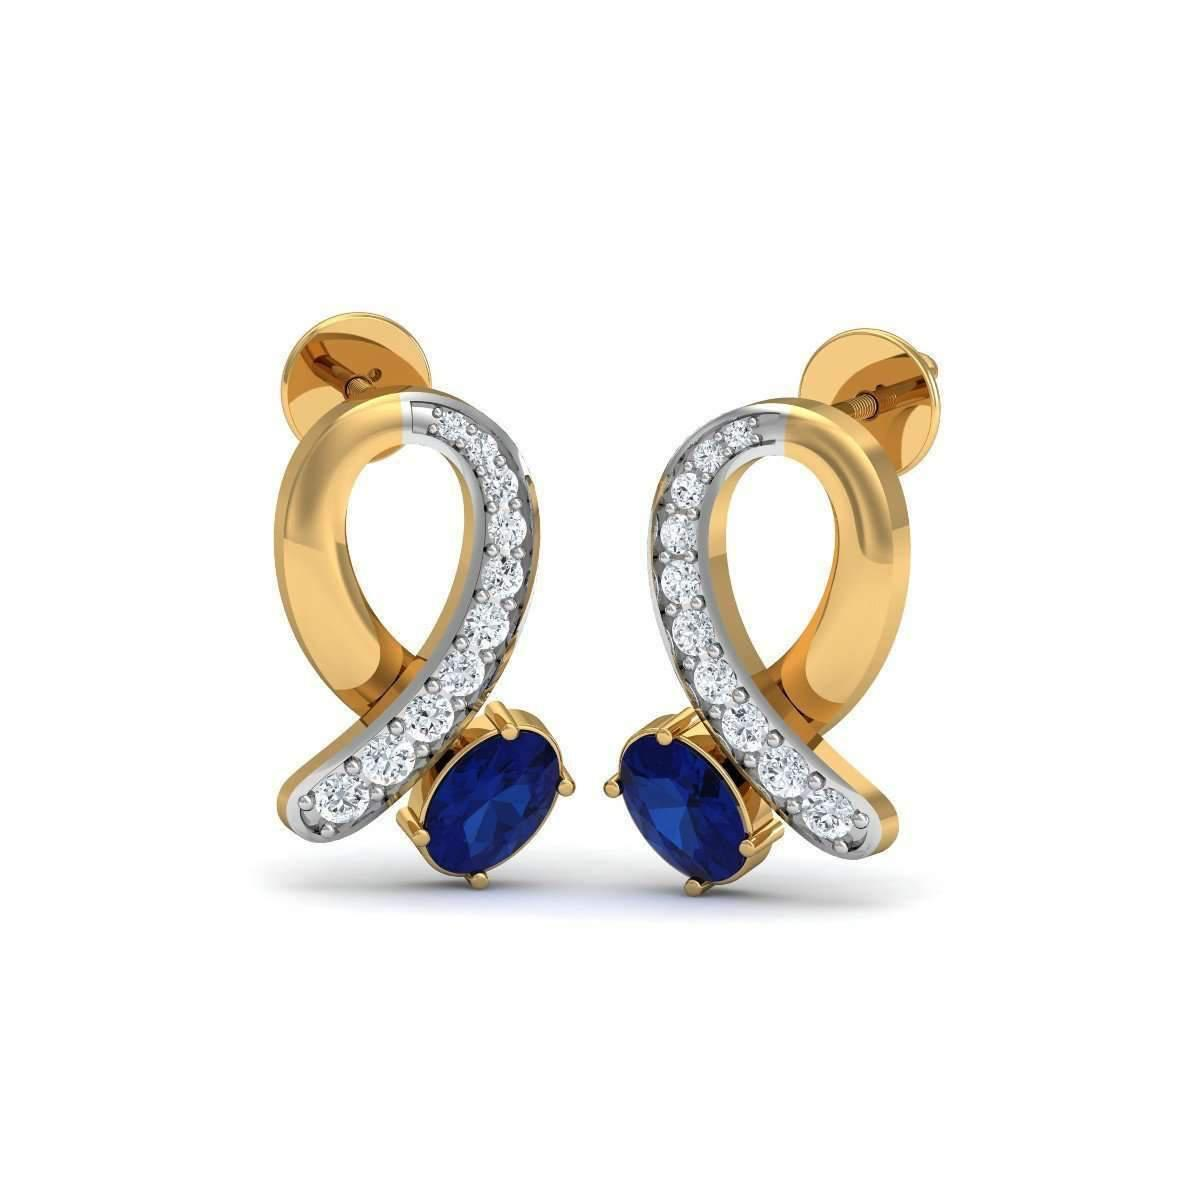 Diamoire Jewels Oval Sapphire and Diamond Ribbon Earrings in 18kt Gold faQYbjAp